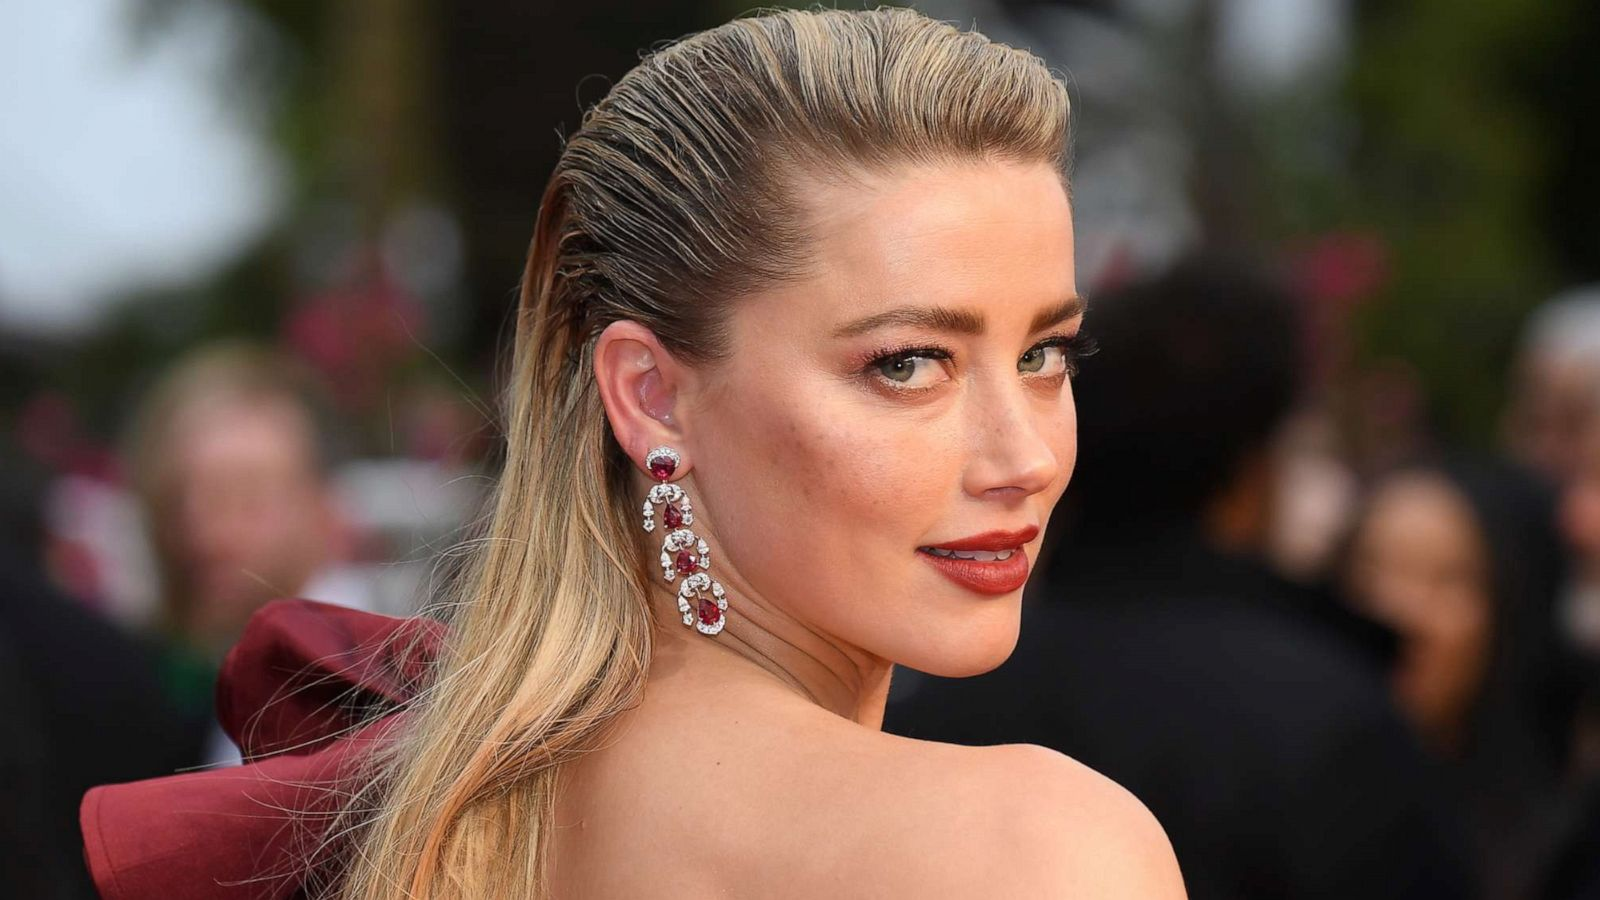 Amber Heard Topless amber heard protests instagram's female 'no nipple' policy